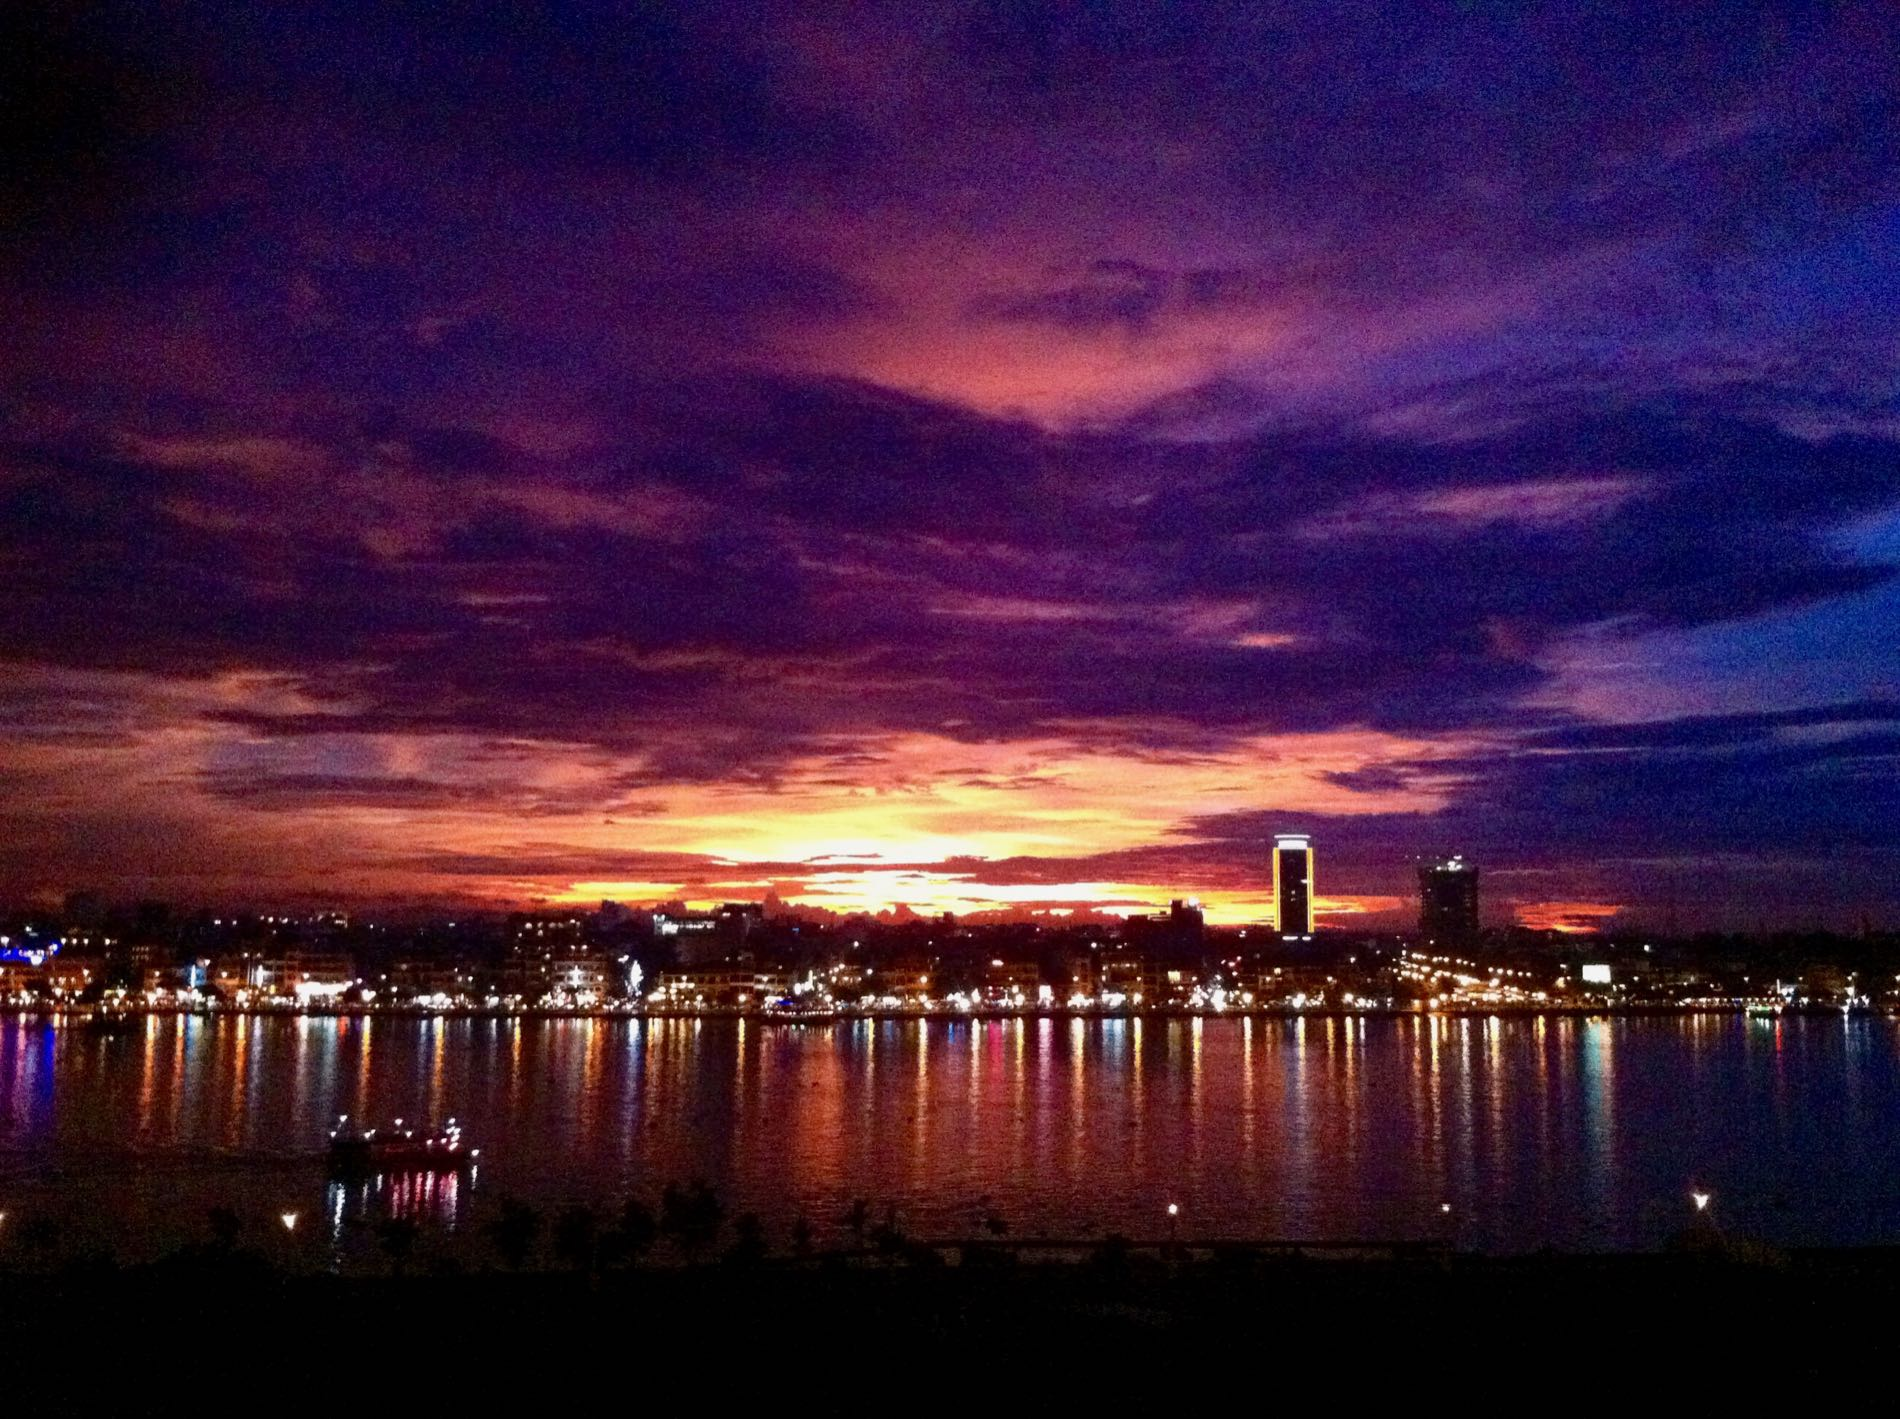 Lingering-sunset-skyline-over-Phnom-Penh-sunset-2008.jpg